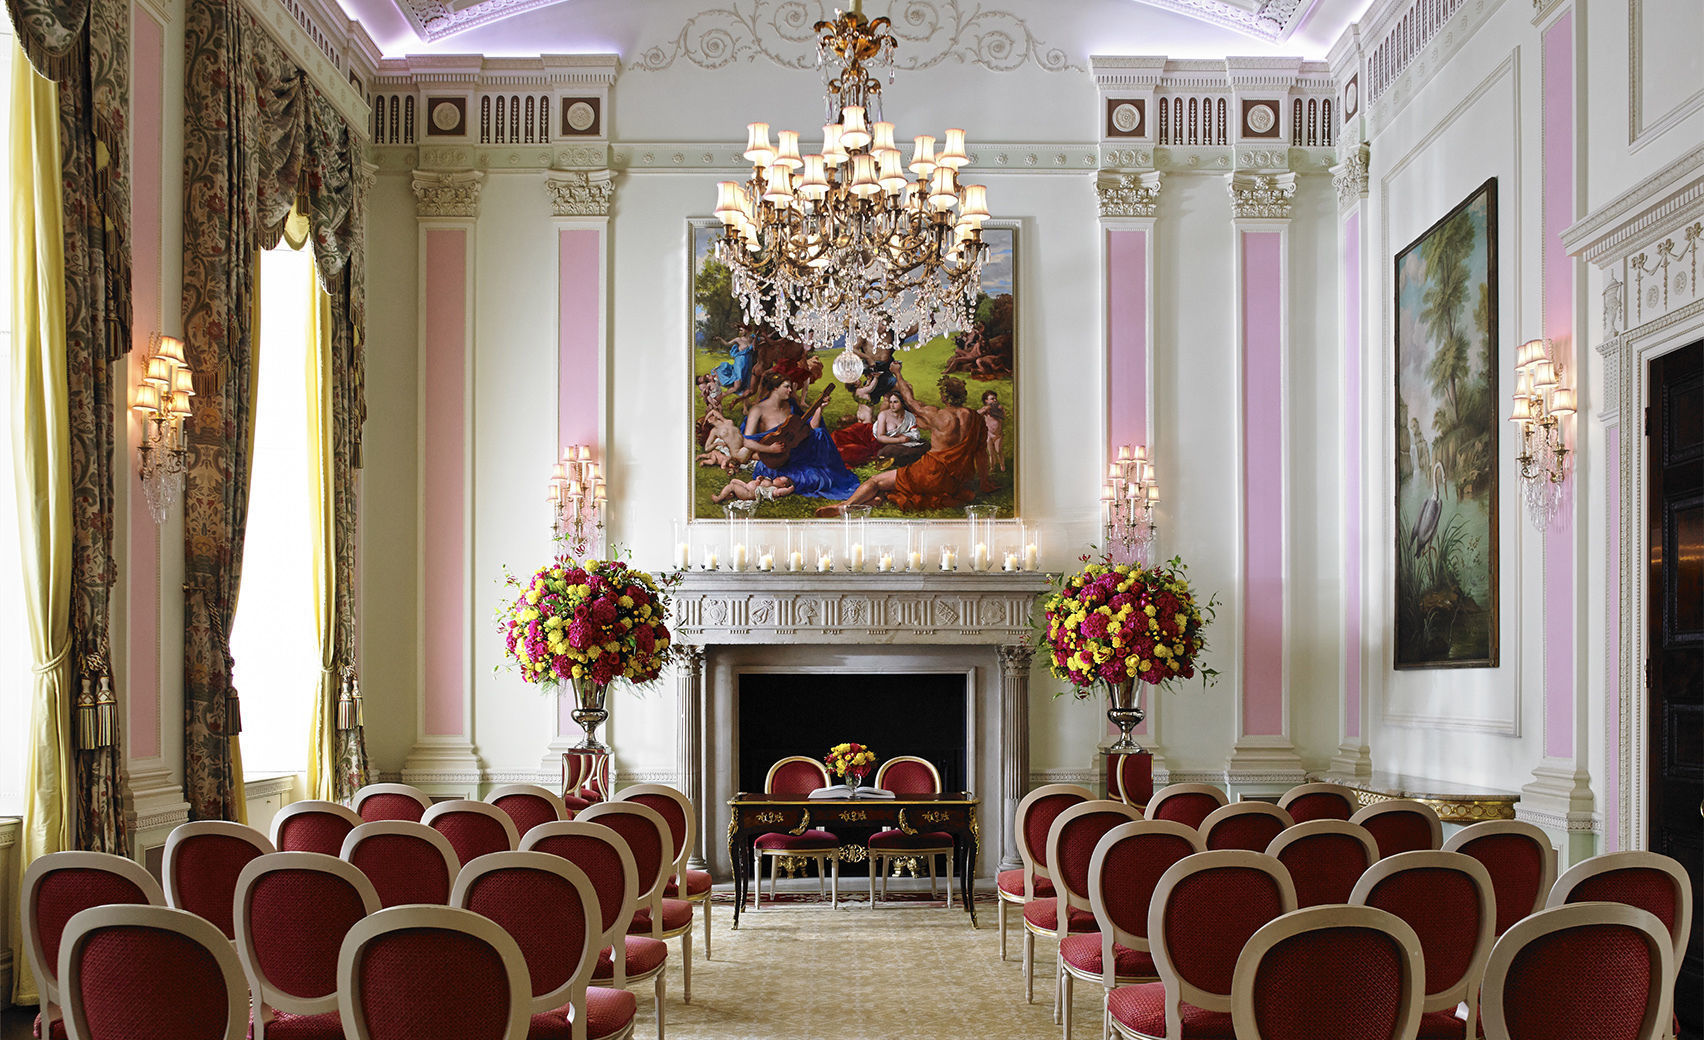 The Ritz London is one of the most iconic venues in the city. The Music Room at The Ritz is a grand venue with high ceilings and baby pink pillars. The Space has large oil paintings hanging from the walls and a huge chandelier in the middle of the room.